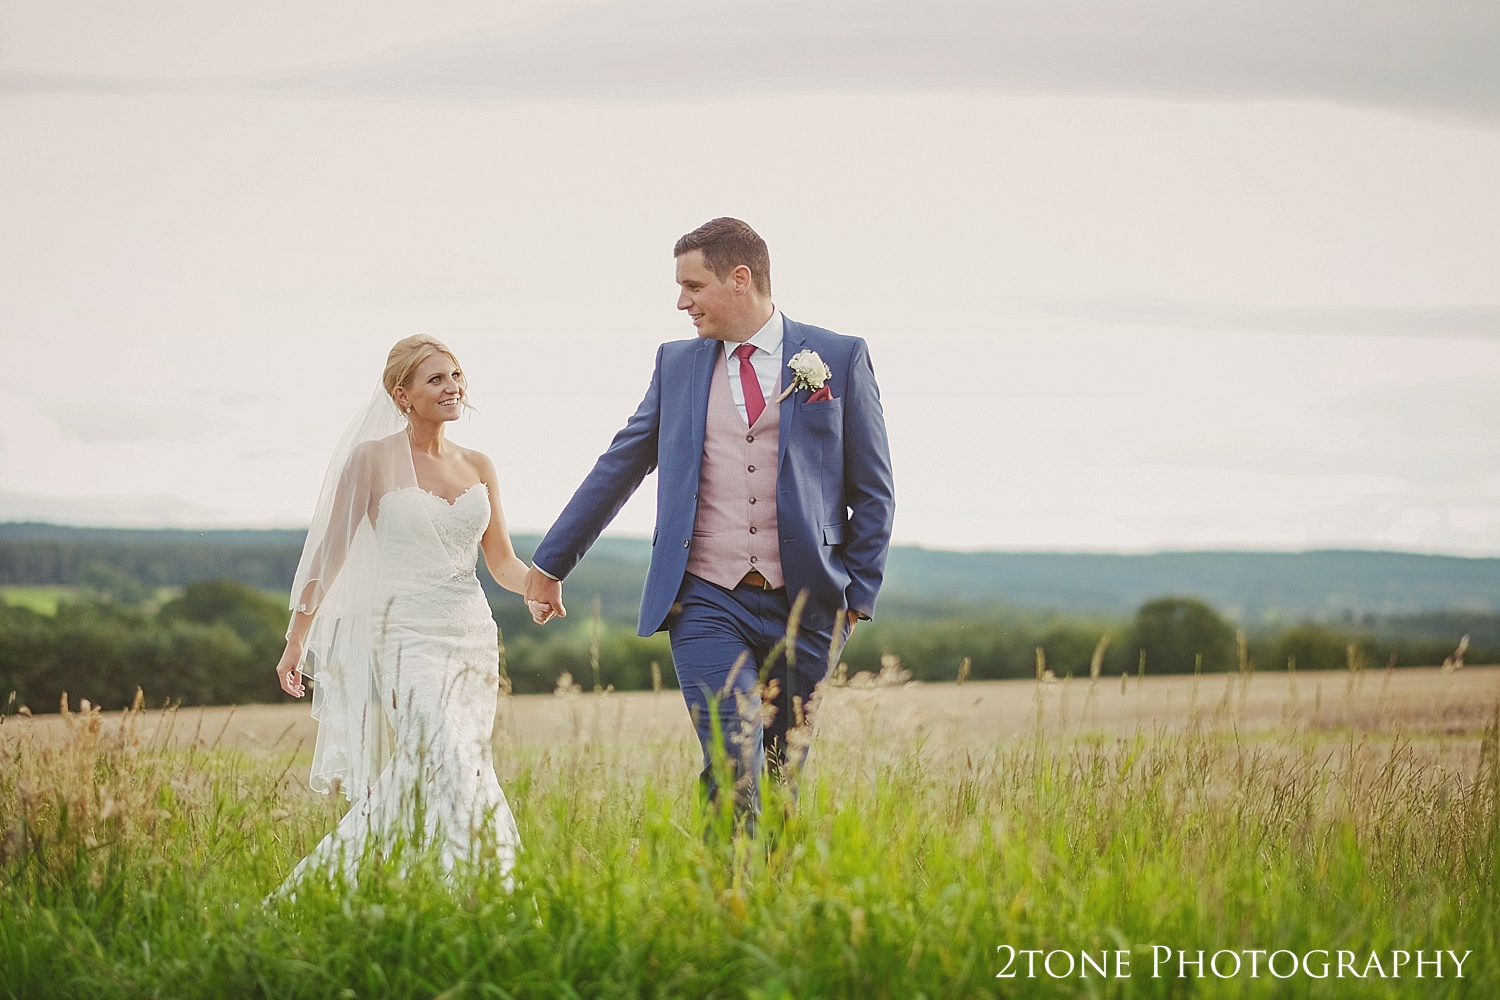 Bride and Groom inBride and groom in a country field at Healey Barn by wedding photography team, 2tone Photography www.2tonephotography.co.uk